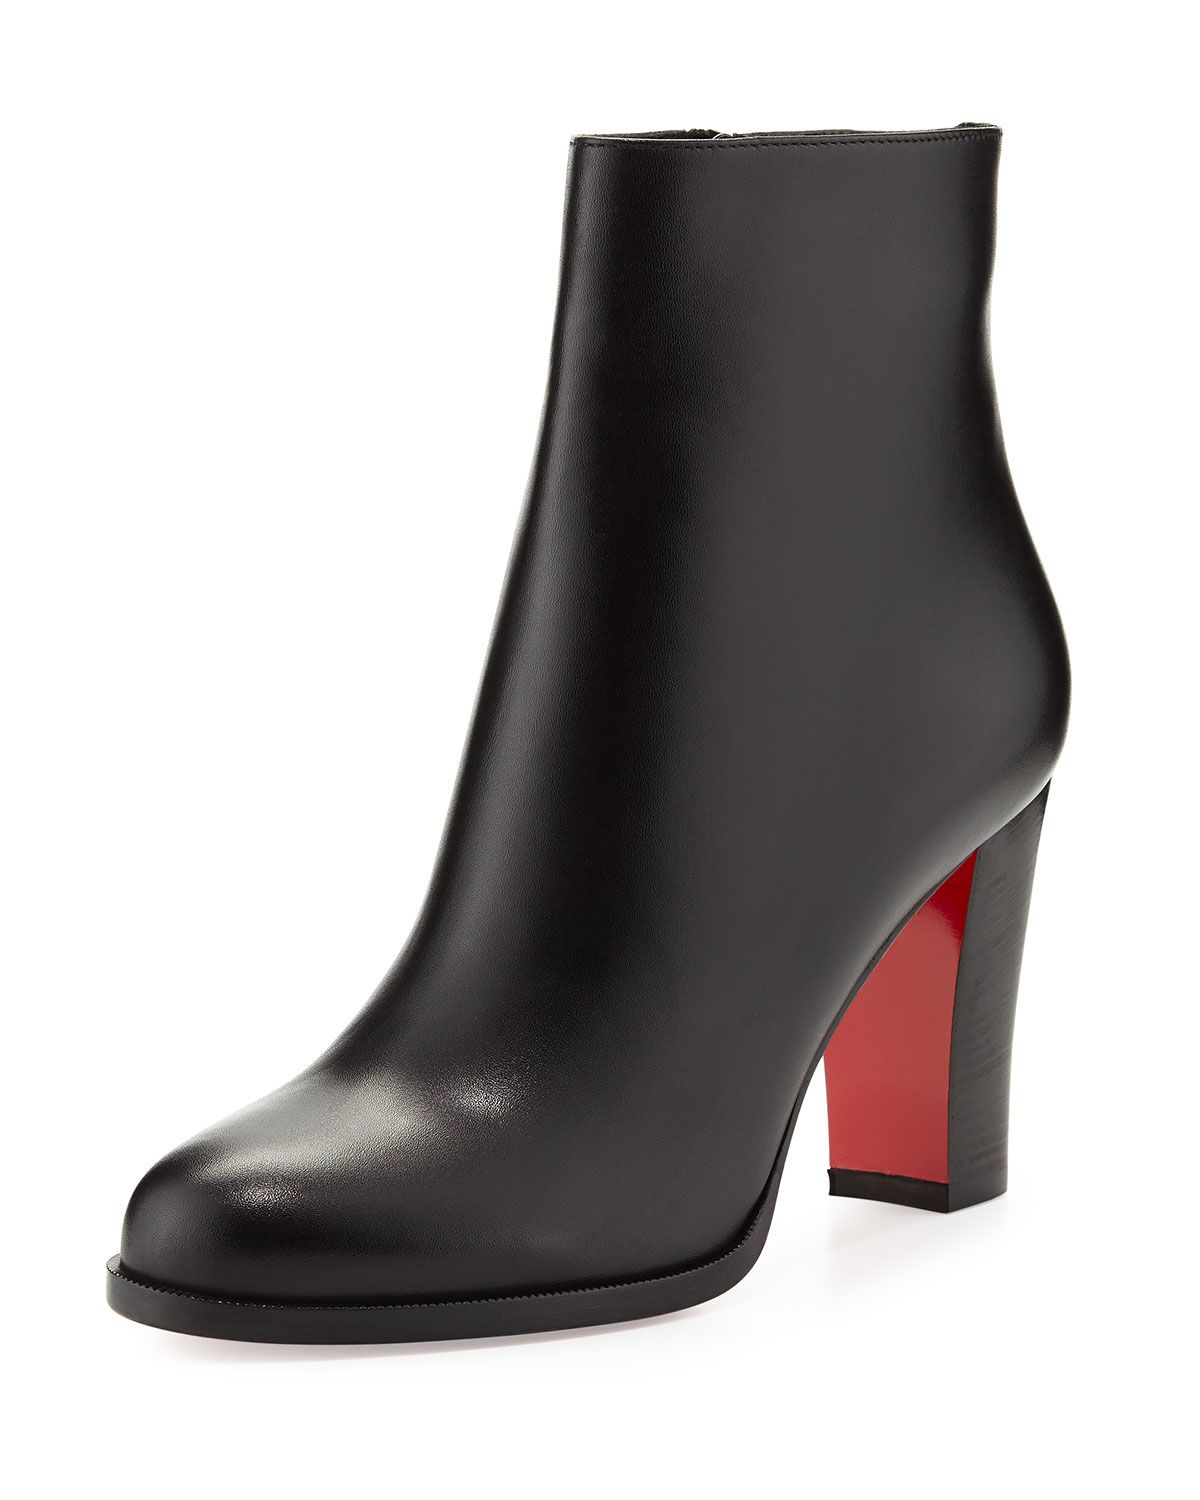 ac647fc666a2 Christian Louboutin Adox Leather 85mm Red Sole Ankle Boot